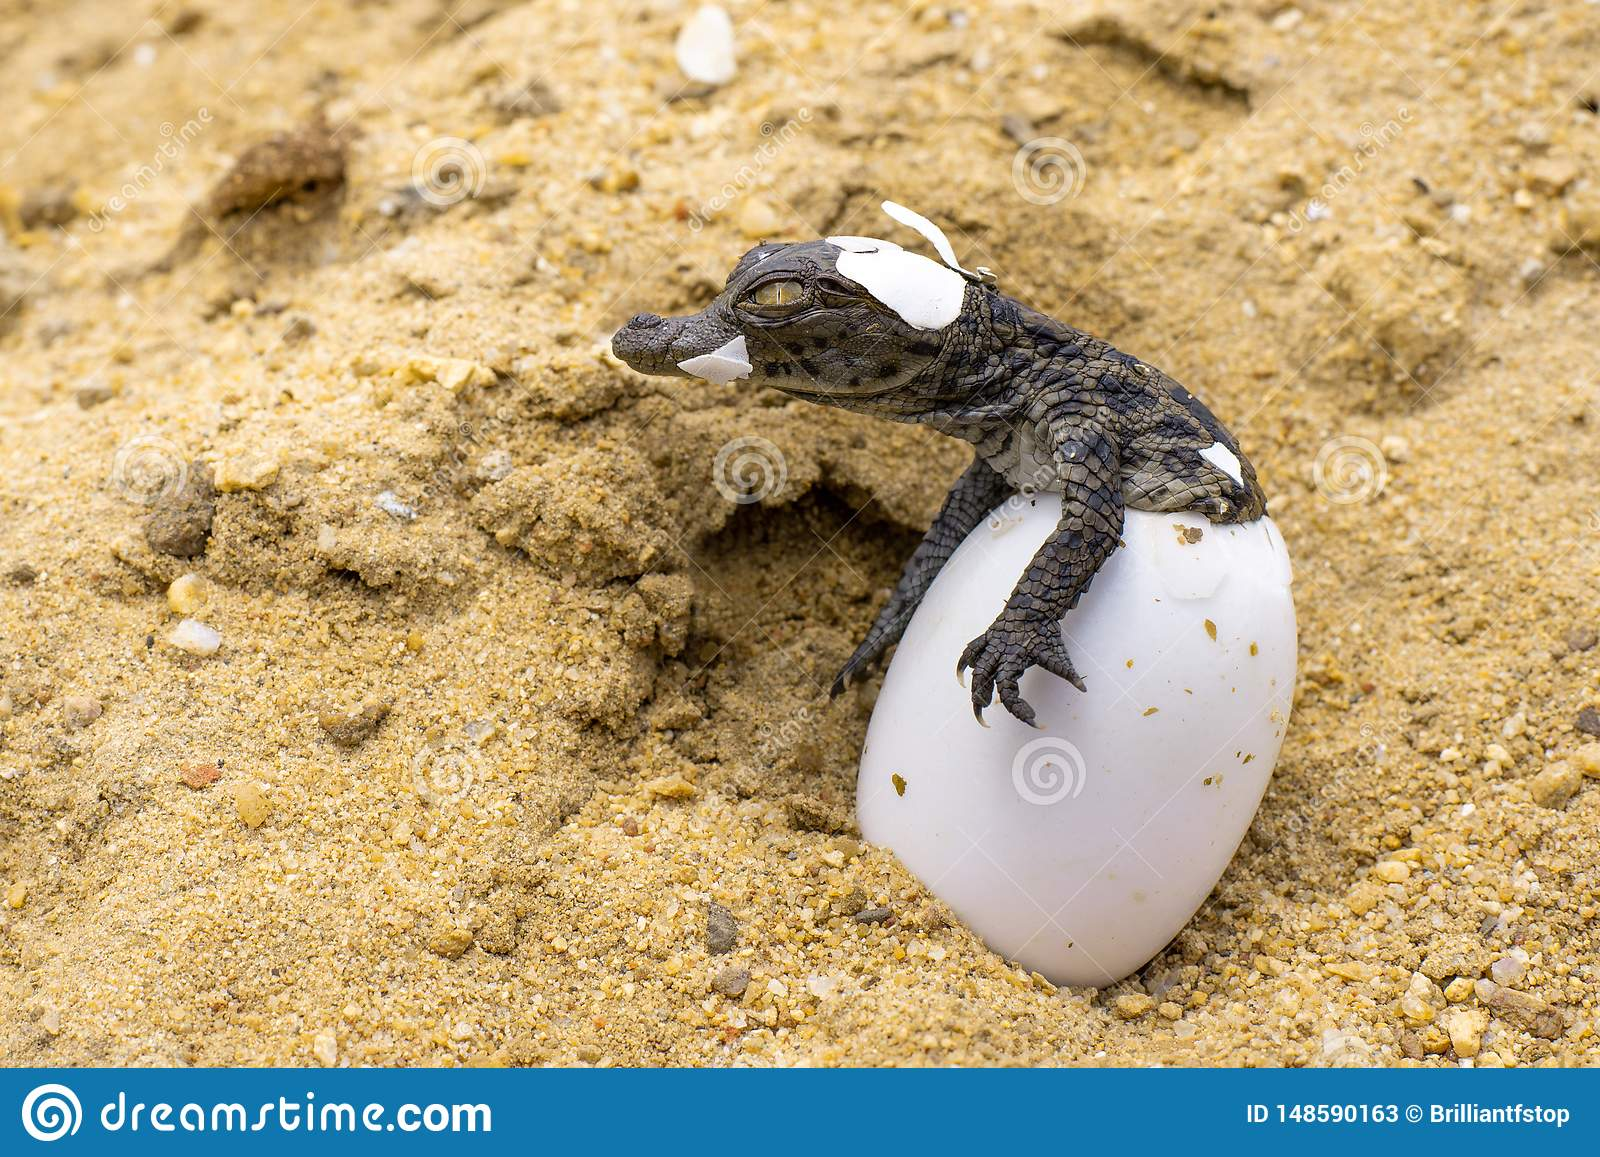 WILDLIFE: CROC BORN TO BE FEARED